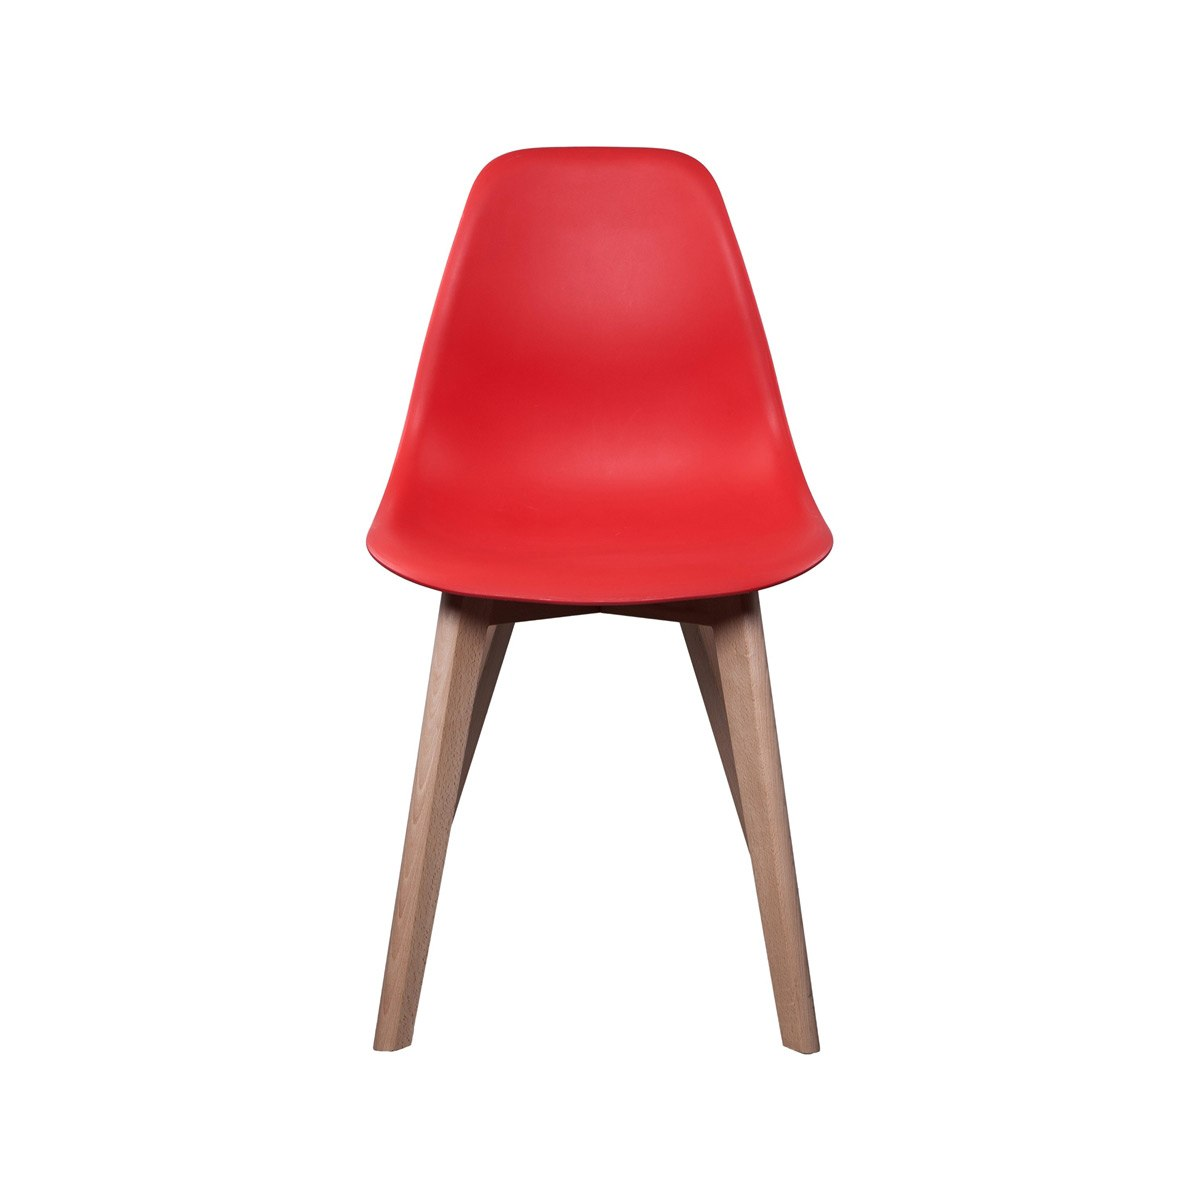 Coque Rouge Scandinave Coque Chaise Scandinave Chaise bvm6gIfY7y